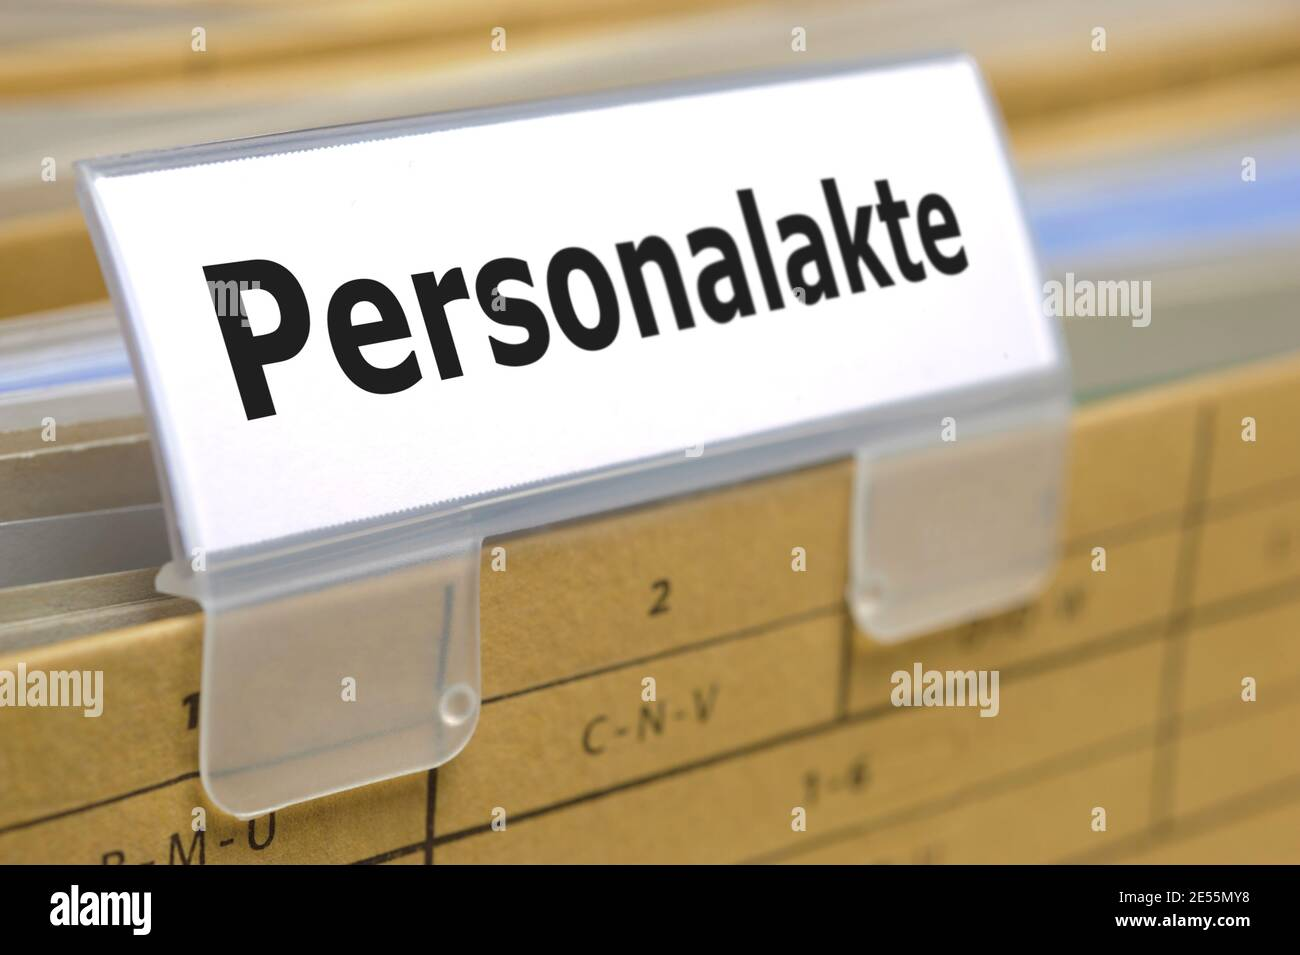 Hängeregister für Personalakte Stock Photo